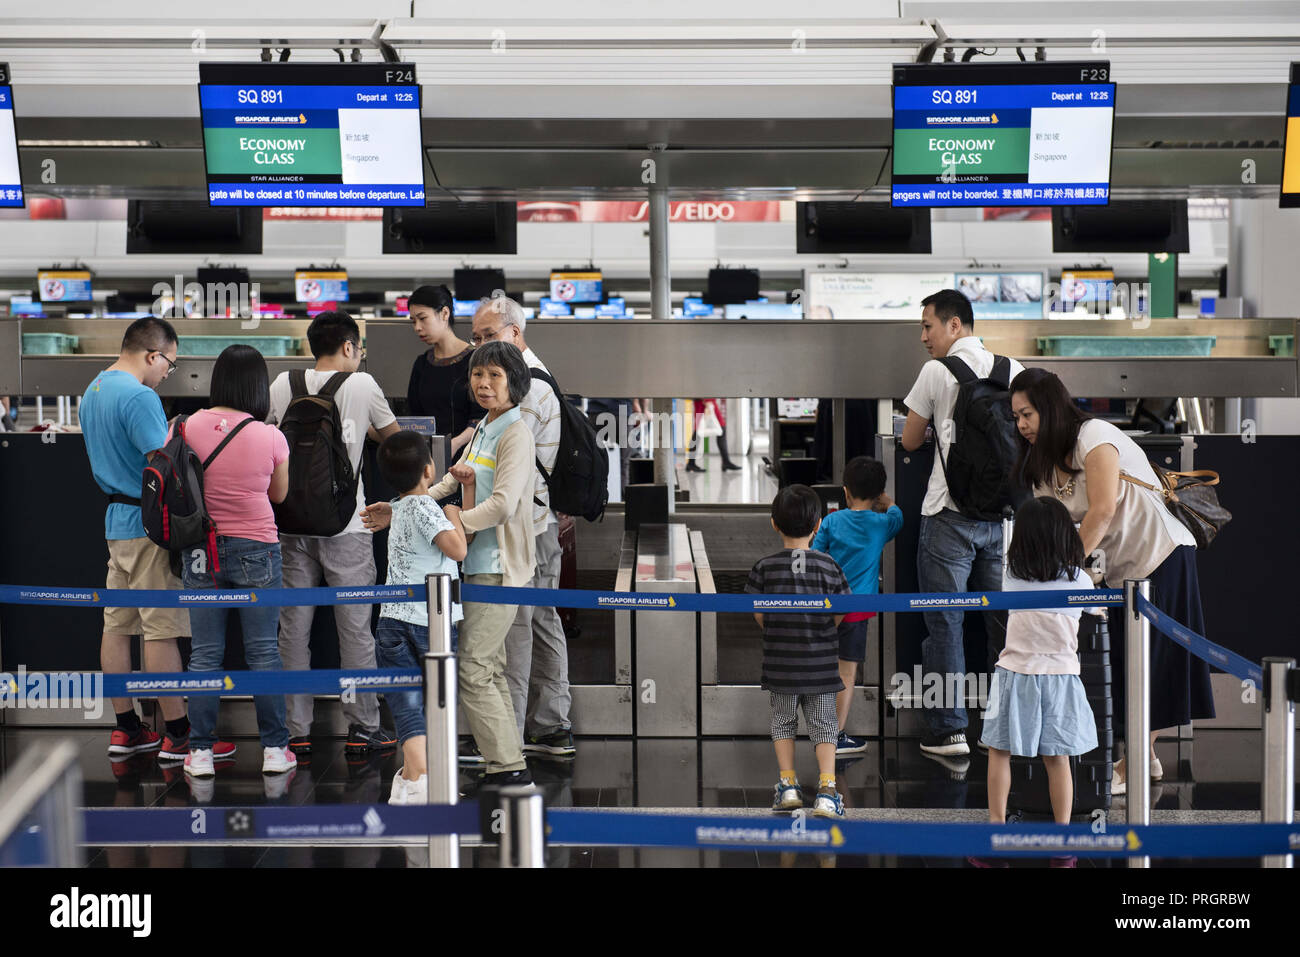 Chek Lap Kok island, Hong Kong. 28th Sep, 2018. Flight passengers of Singapore Airline are seen lining up at a check-in desk. Credit: Miguel Candela/SOPA Images/ZUMA Wire/Alamy Live News - Stock Image